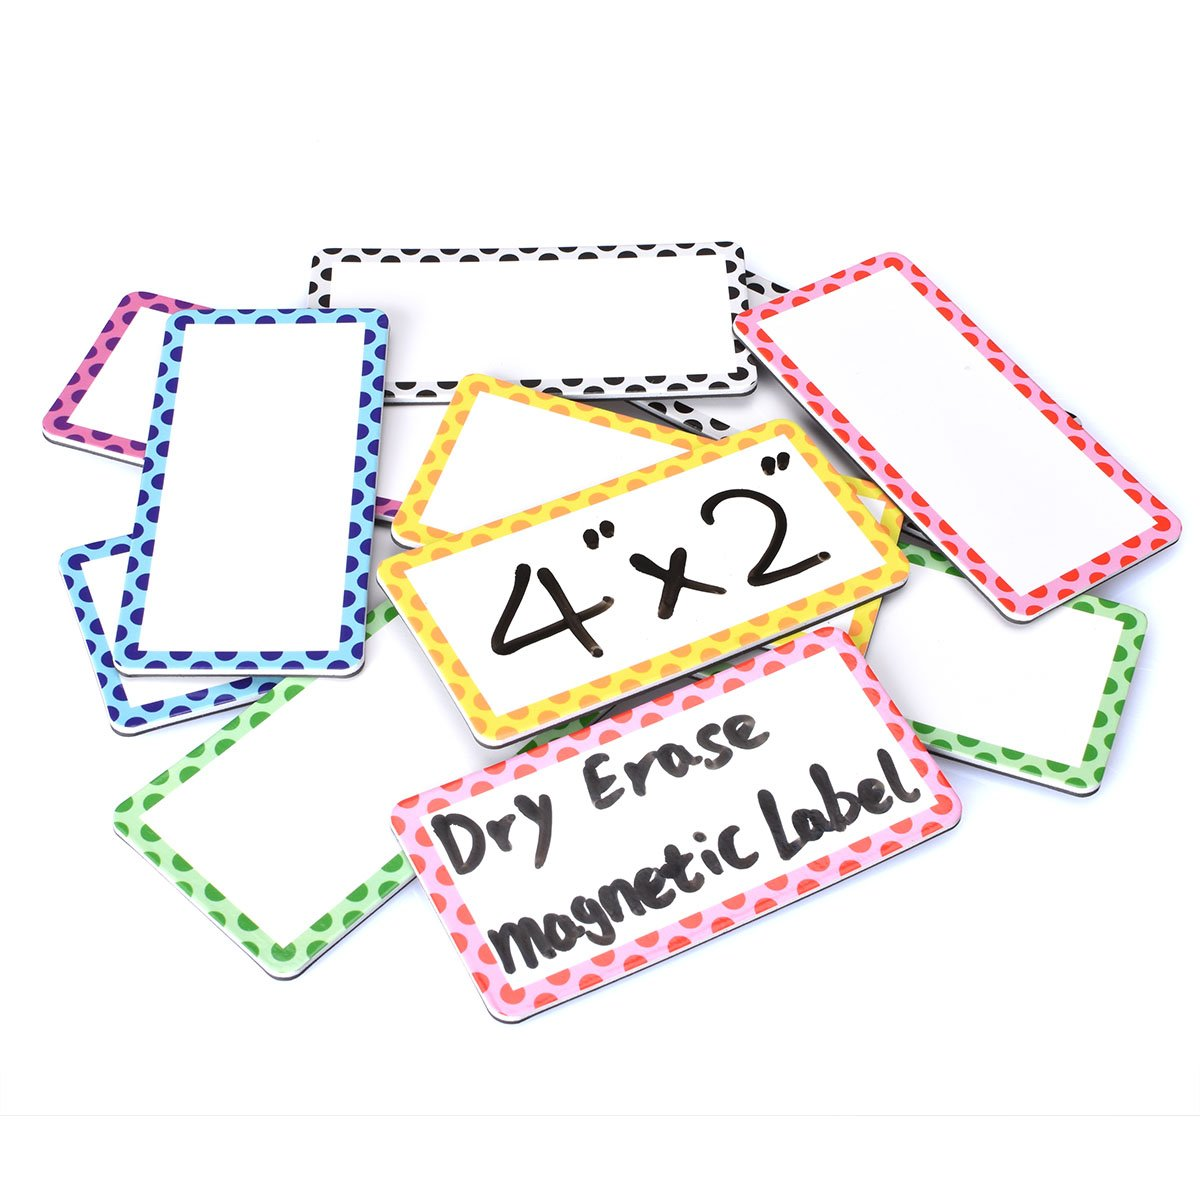 Magnetic Dry Erase Board Magnetic Labels 4'' x 2'' with Cute Bright Borders - Stronger Magnet - Sturdy, Reusable, Effective on Schedule Board, Lockers, Fridge and Classroom Behavior Chart (12 Pcs)